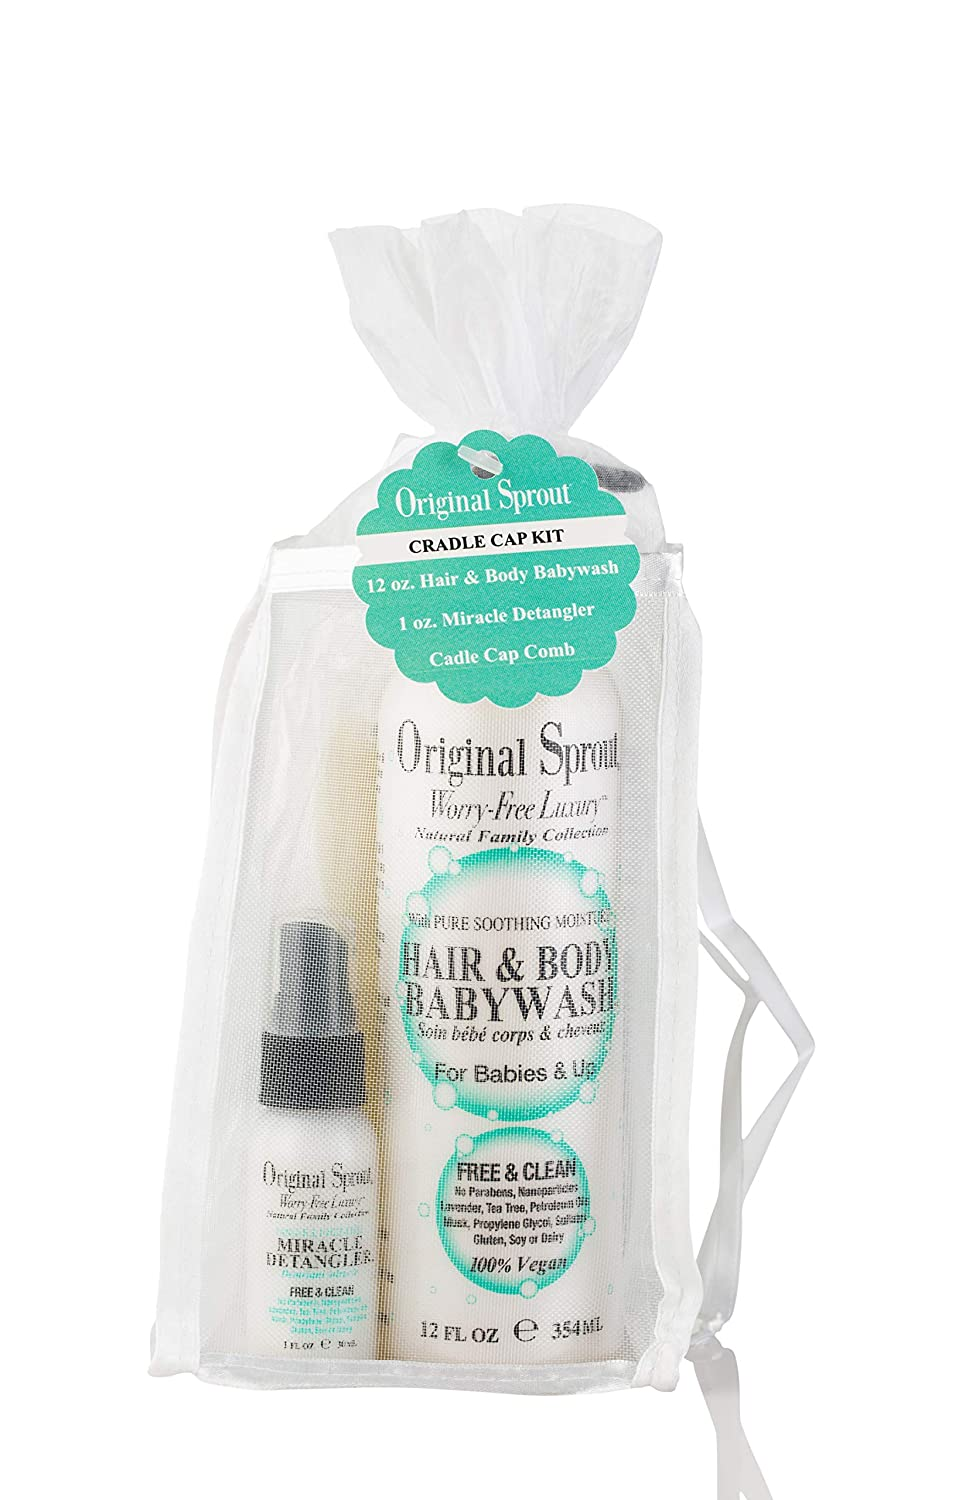 Original Sprout Cradle Cap Kit. Hair and Body Baby Wash, 12 Ounces, Miracle Detangler, 1 Ounce, and Cradle Cap Comb. Dermatologist Tested Products.